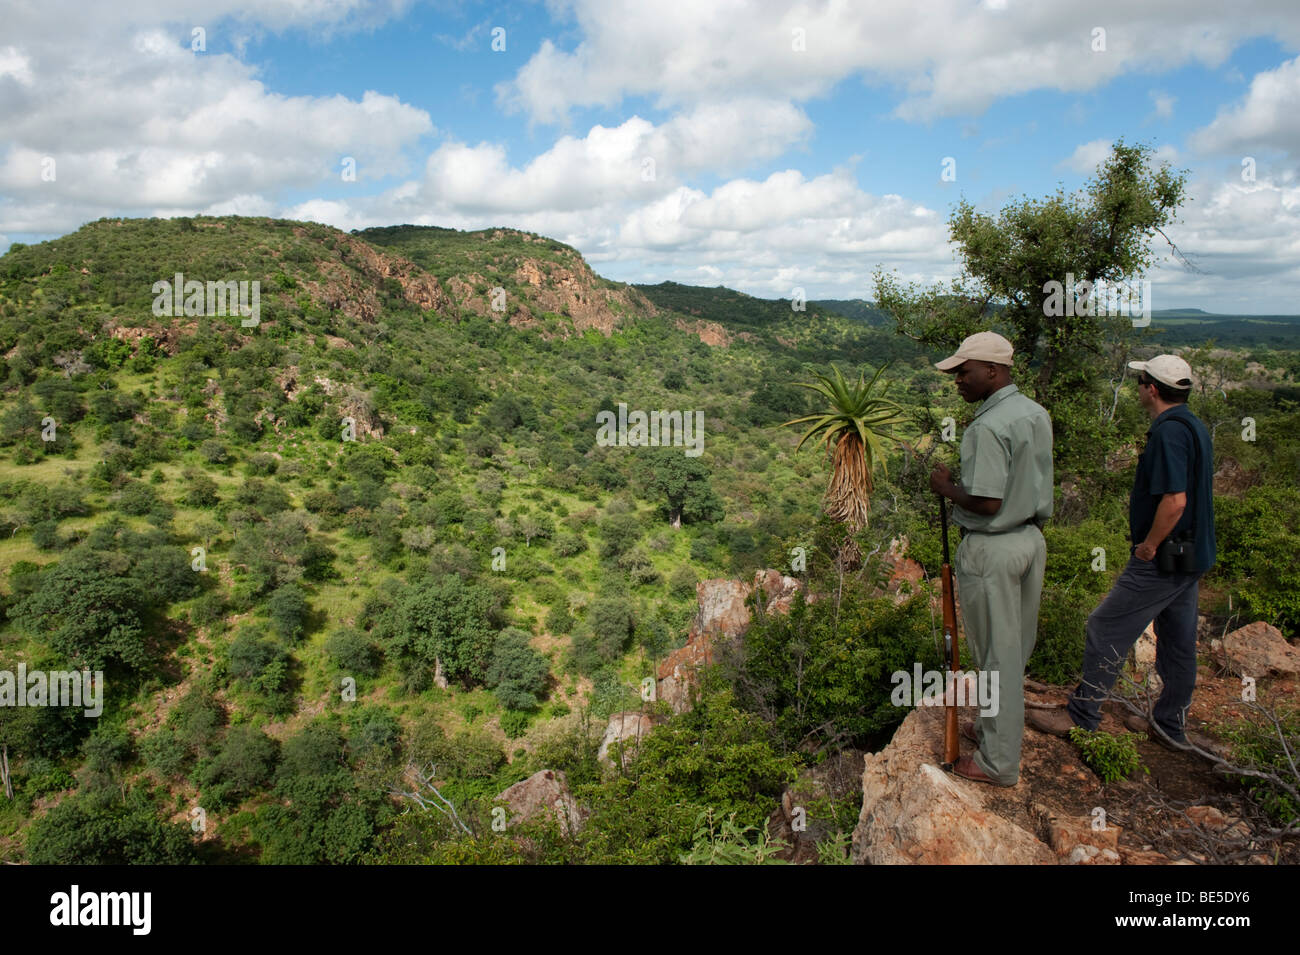 Thulamela archaeological site, Kruger National Park, South Africa - Stock Image